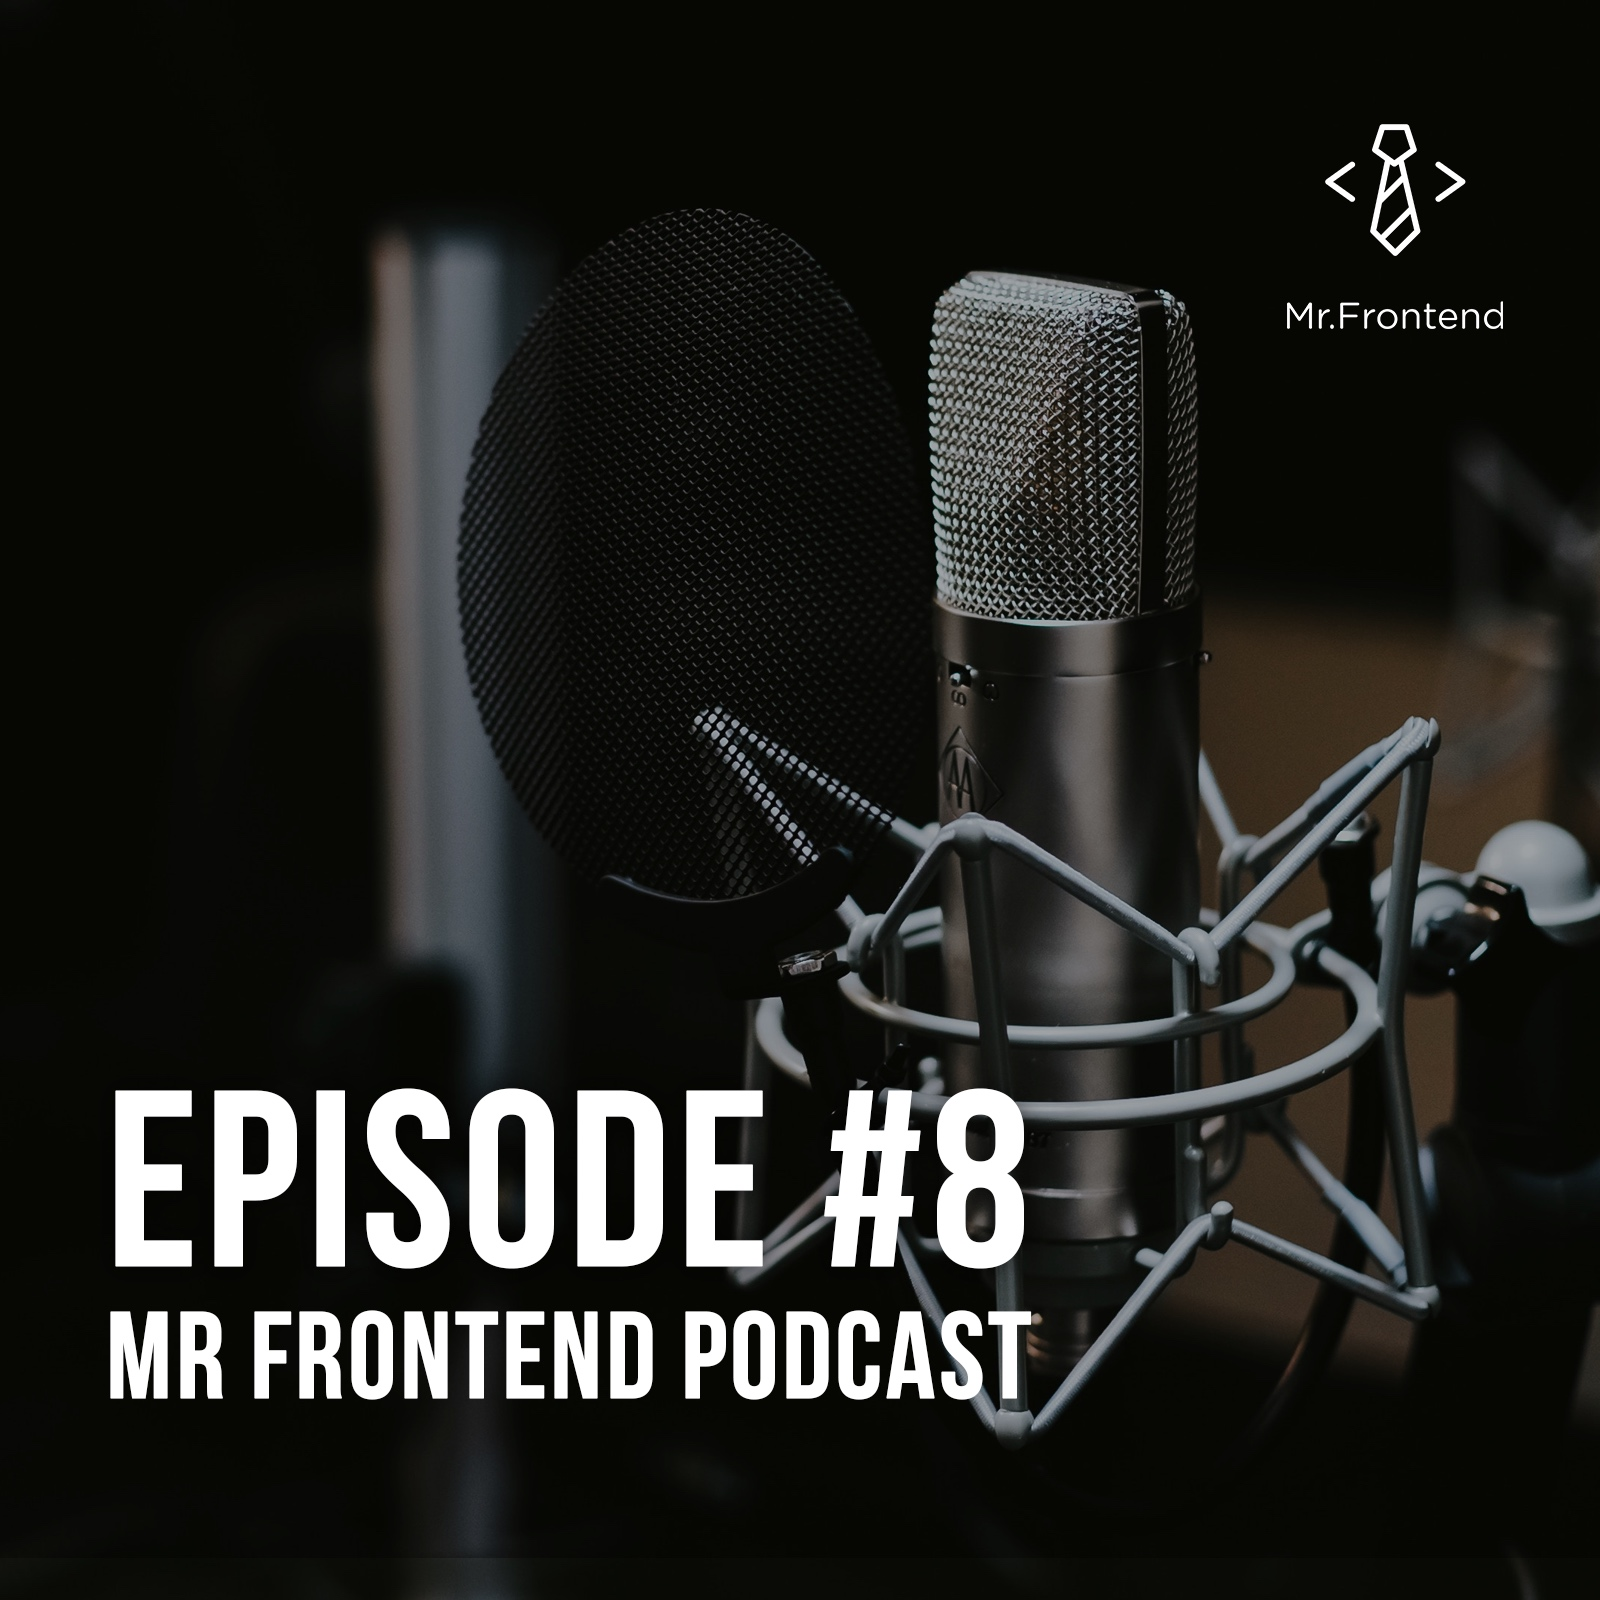 Mr Frontend Podcast #8: Screw New Years resolutions as a web developer! (Work Hard, Play hard)